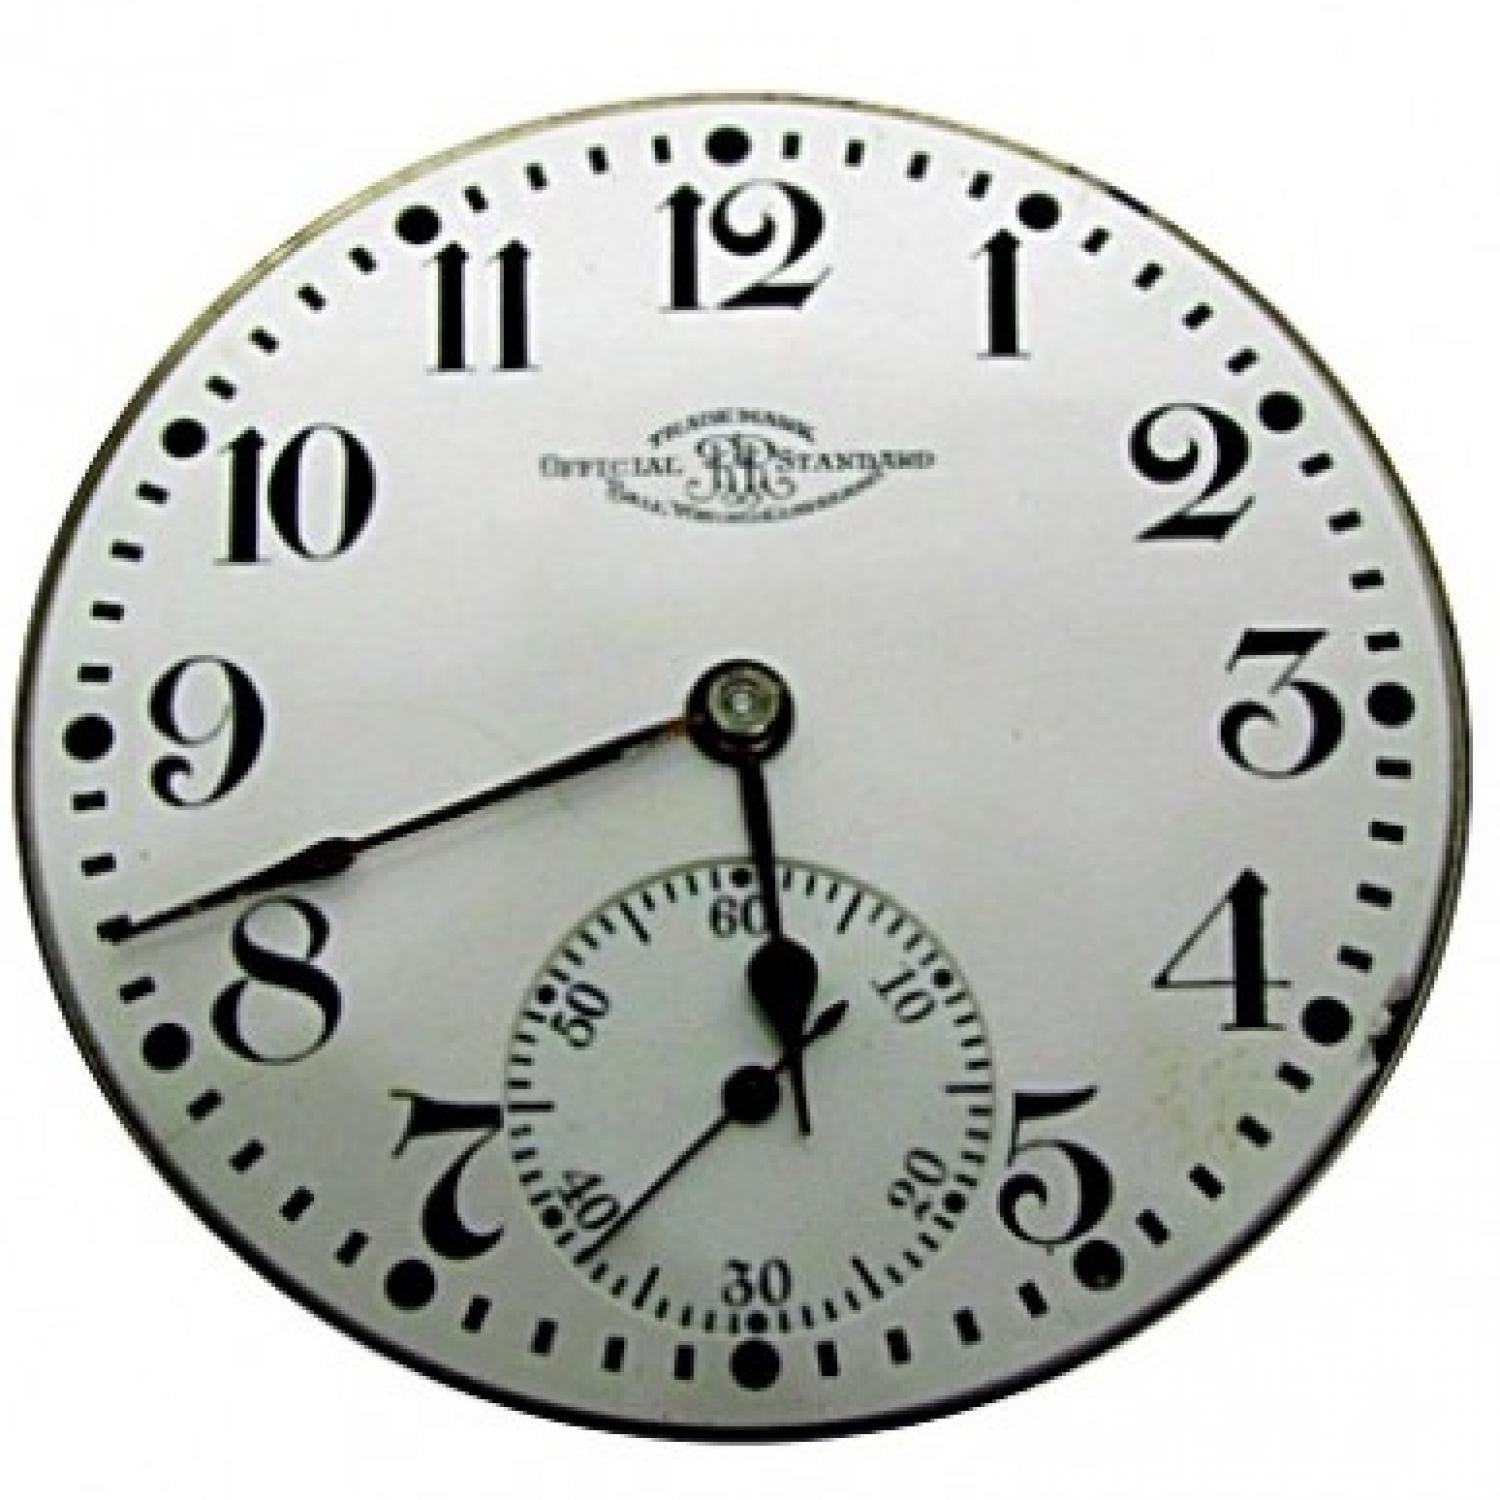 Image of Ball - Waltham Official Standard #B230629 Dial